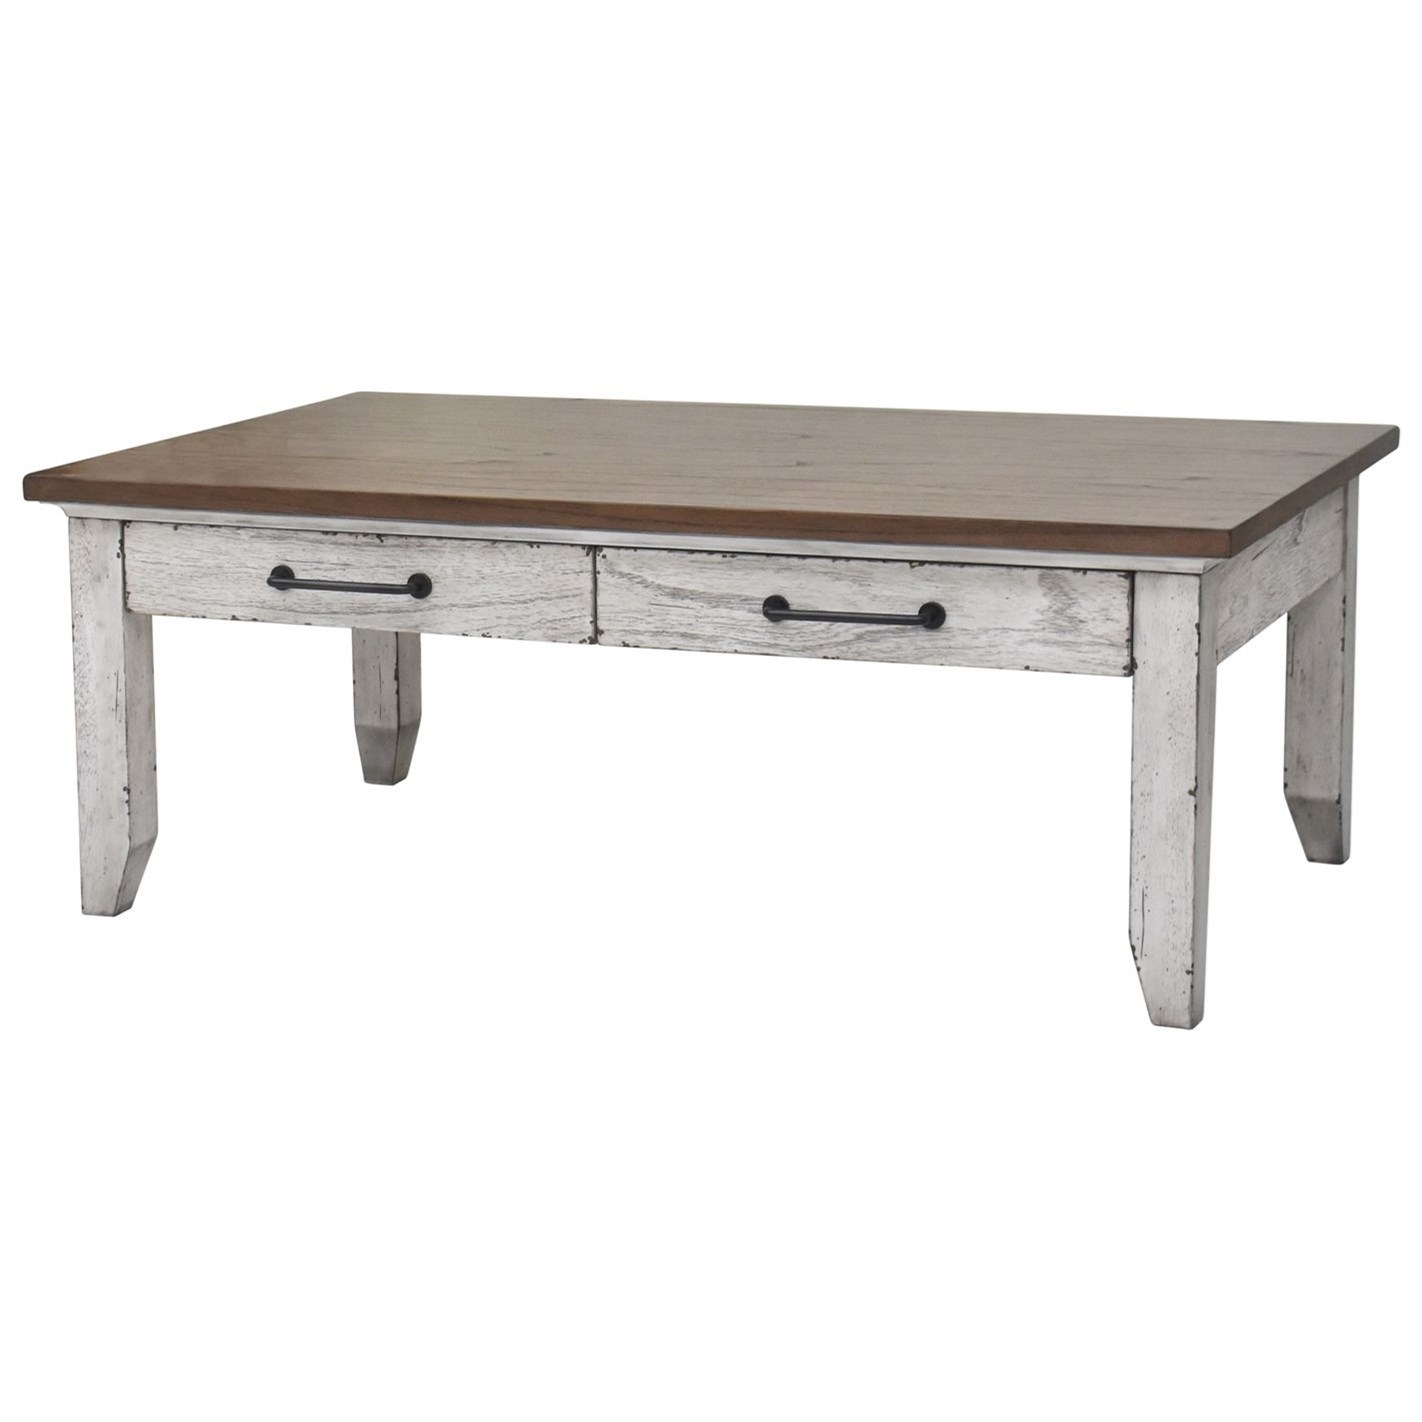 Bear Creek Cocktail Table by Steve Silver at Van Hill Furniture